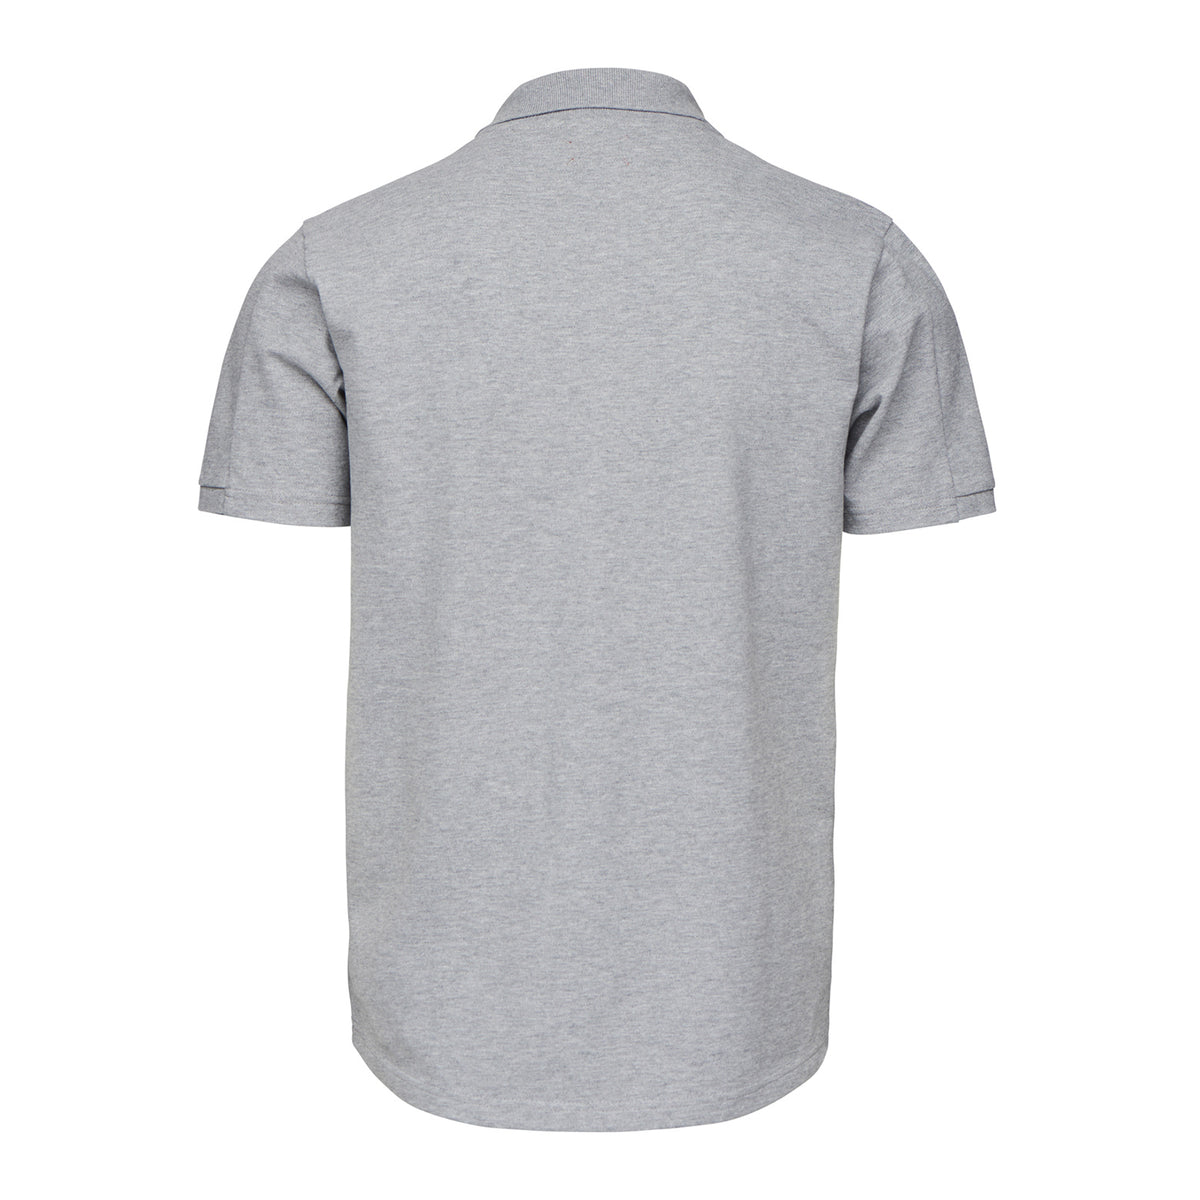 Breeze Polo Shirt - background::white,variant::Gray Melange